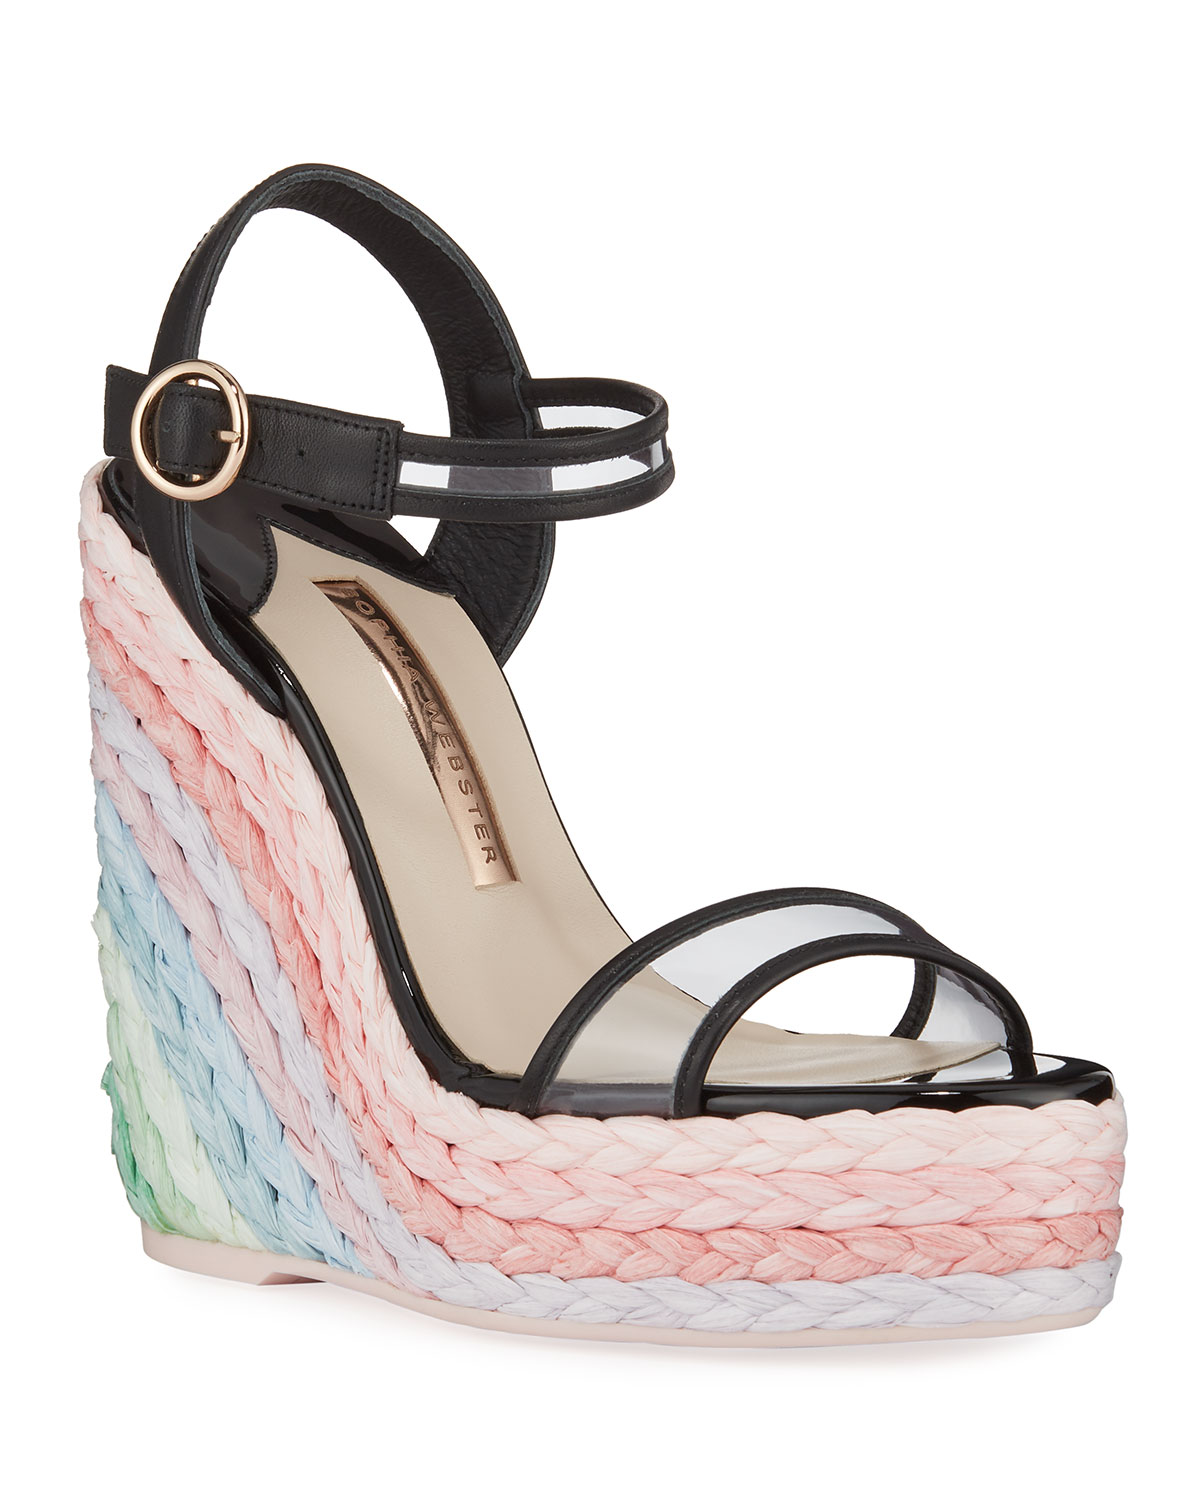 Sophia Webster Wedges LUCITA PASTEL WEDGE ESPADRILLES